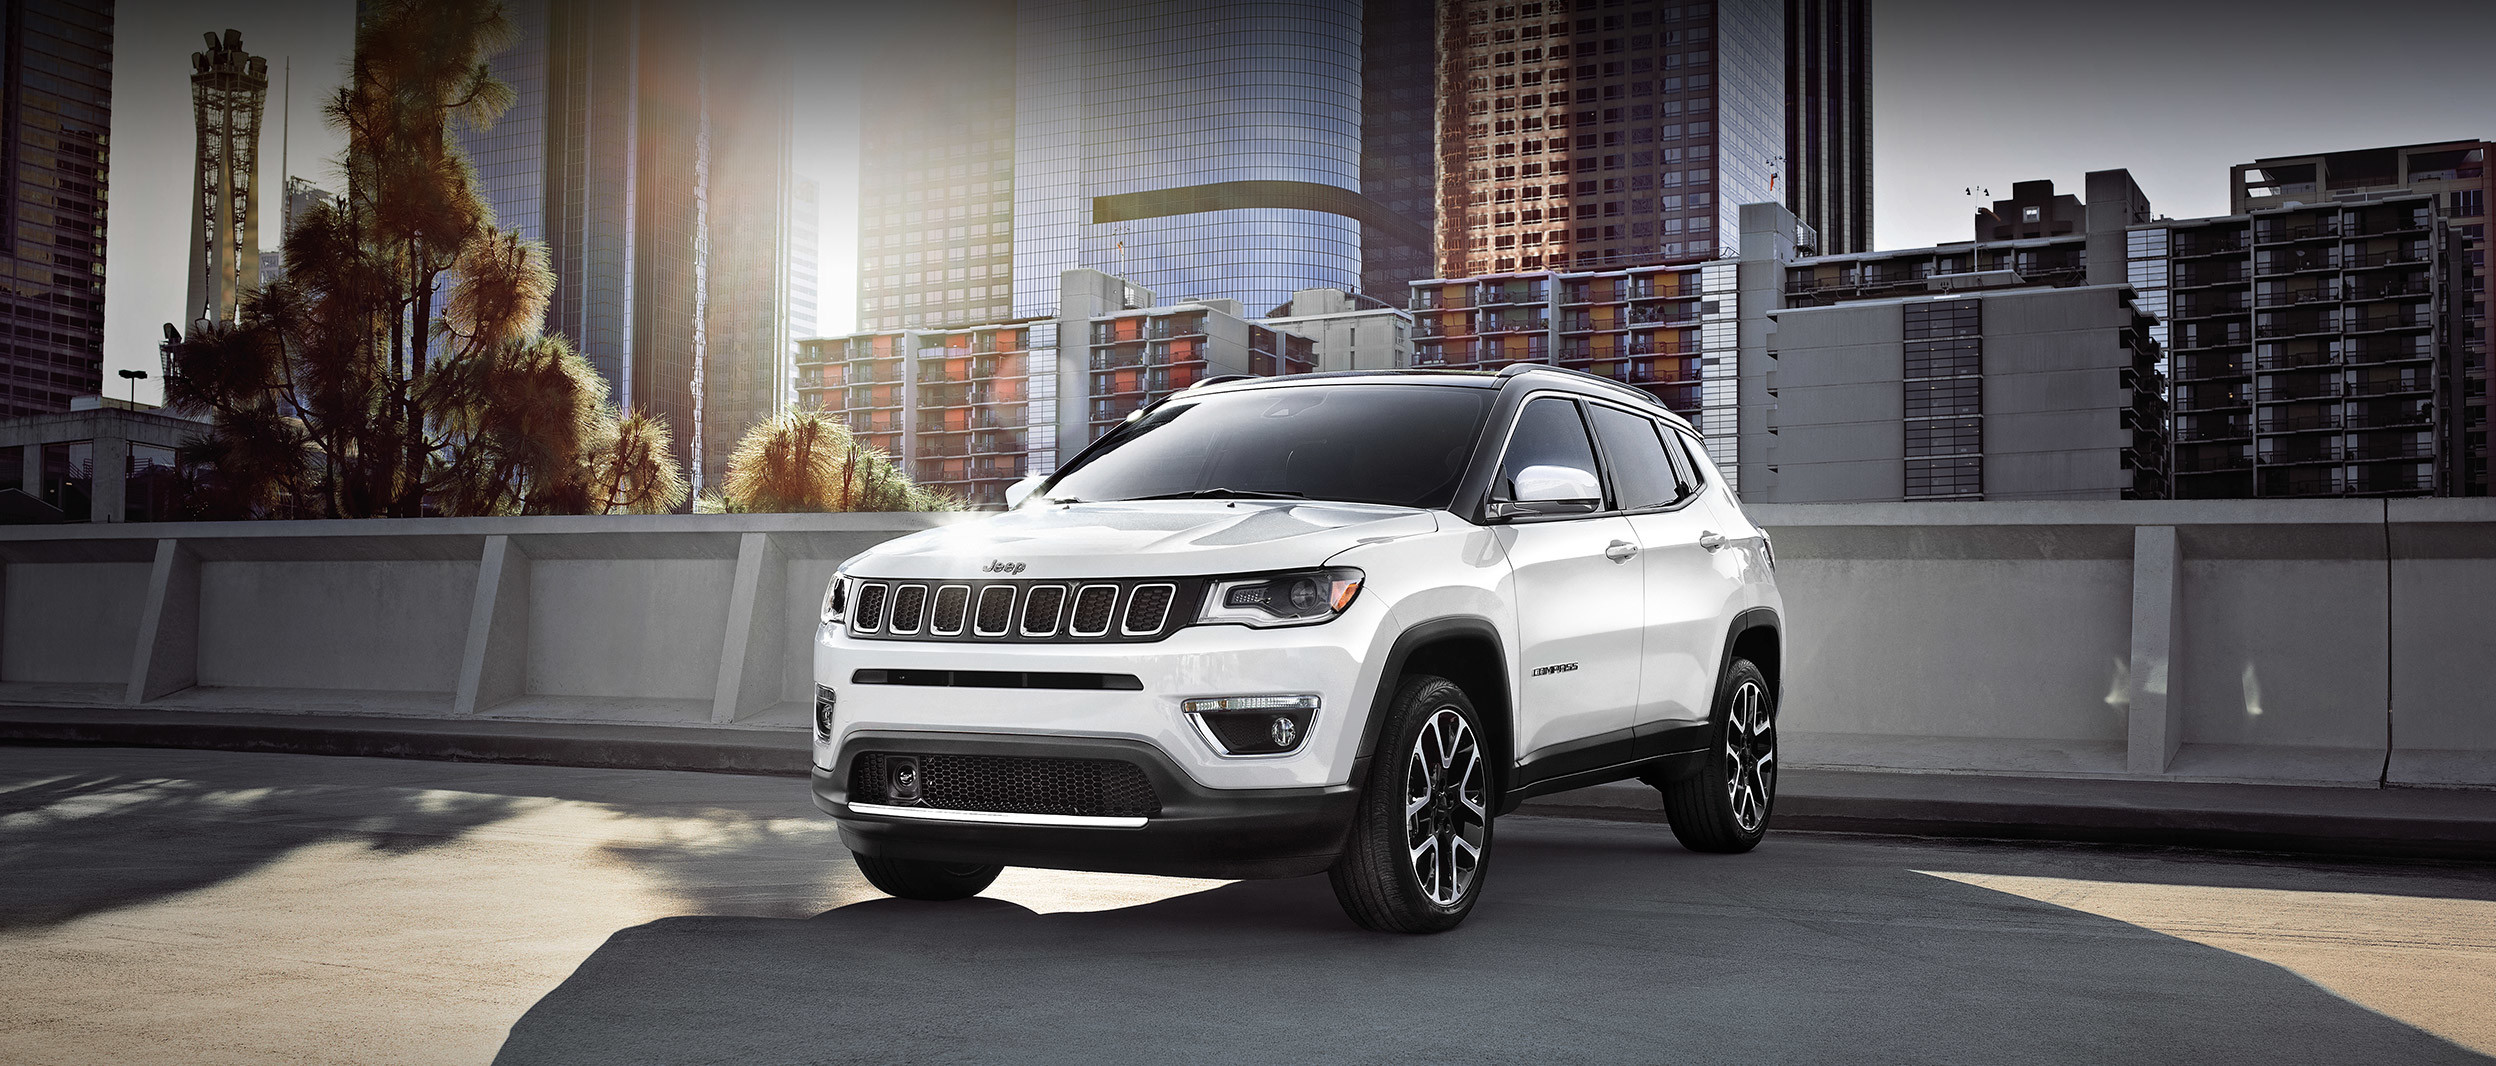 214bcfc97e 2019 Jeep Compass silver driving 2019 Jeep Compass silver driving